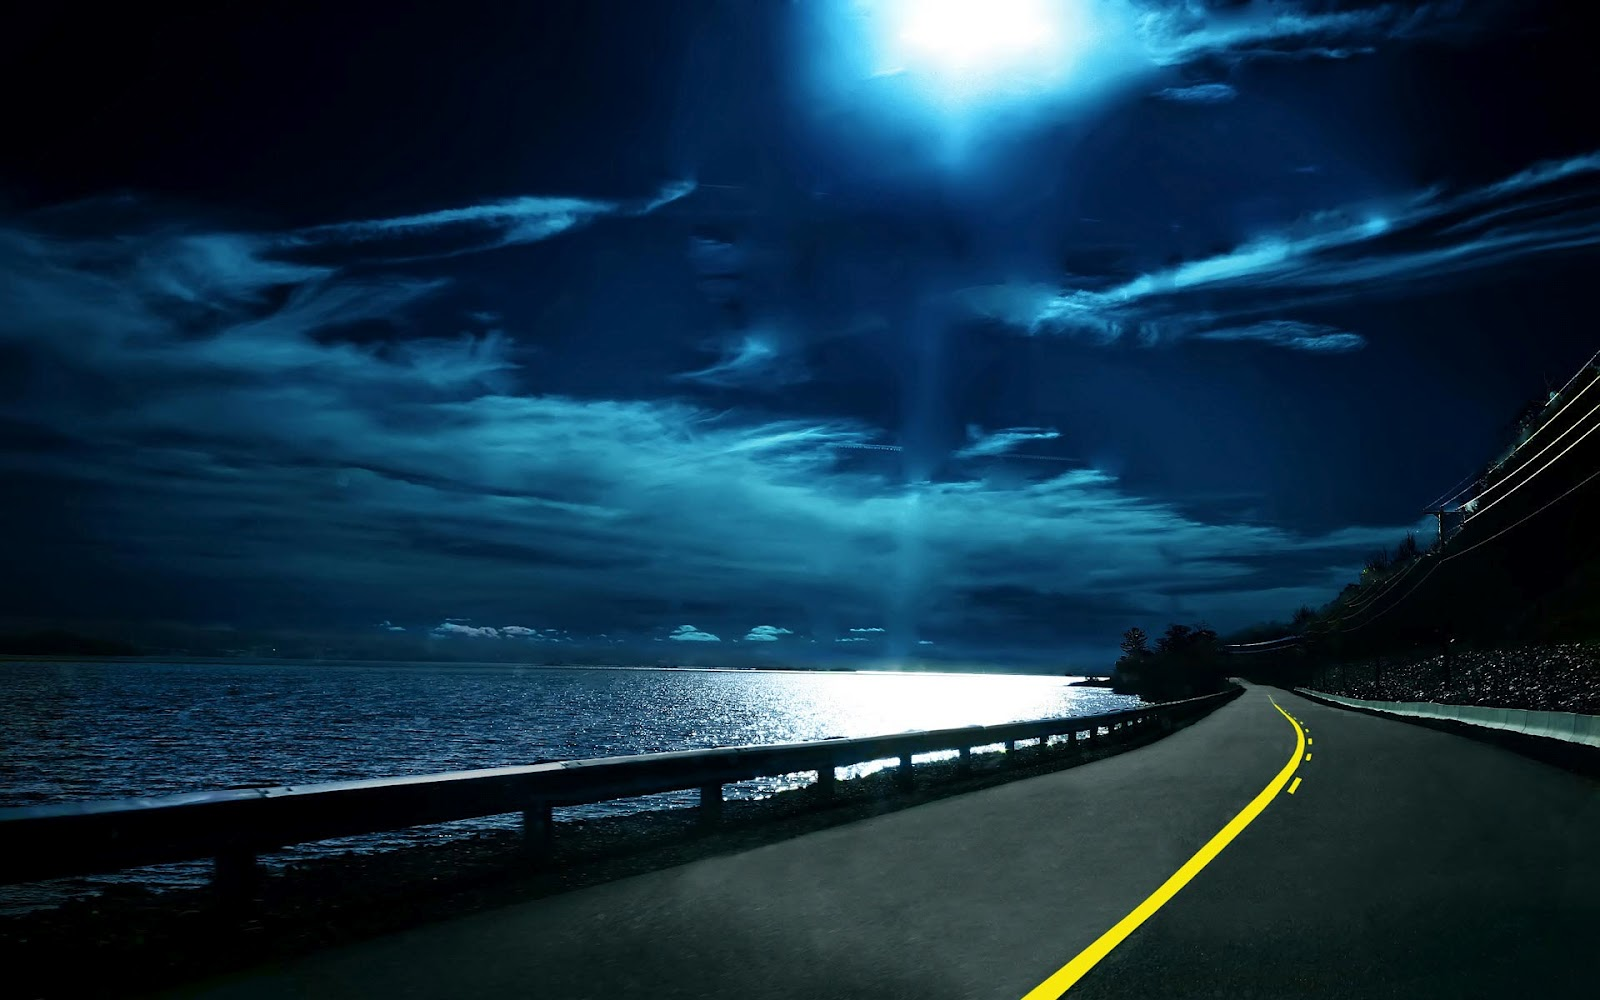 http://4.bp.blogspot.com/-PVB1lRy36k0/T4aWHqMIhVI/AAAAAAAAADg/ExKpnNvLDfM/s1600/Night_Highway_desktop_wallpaper.jpg